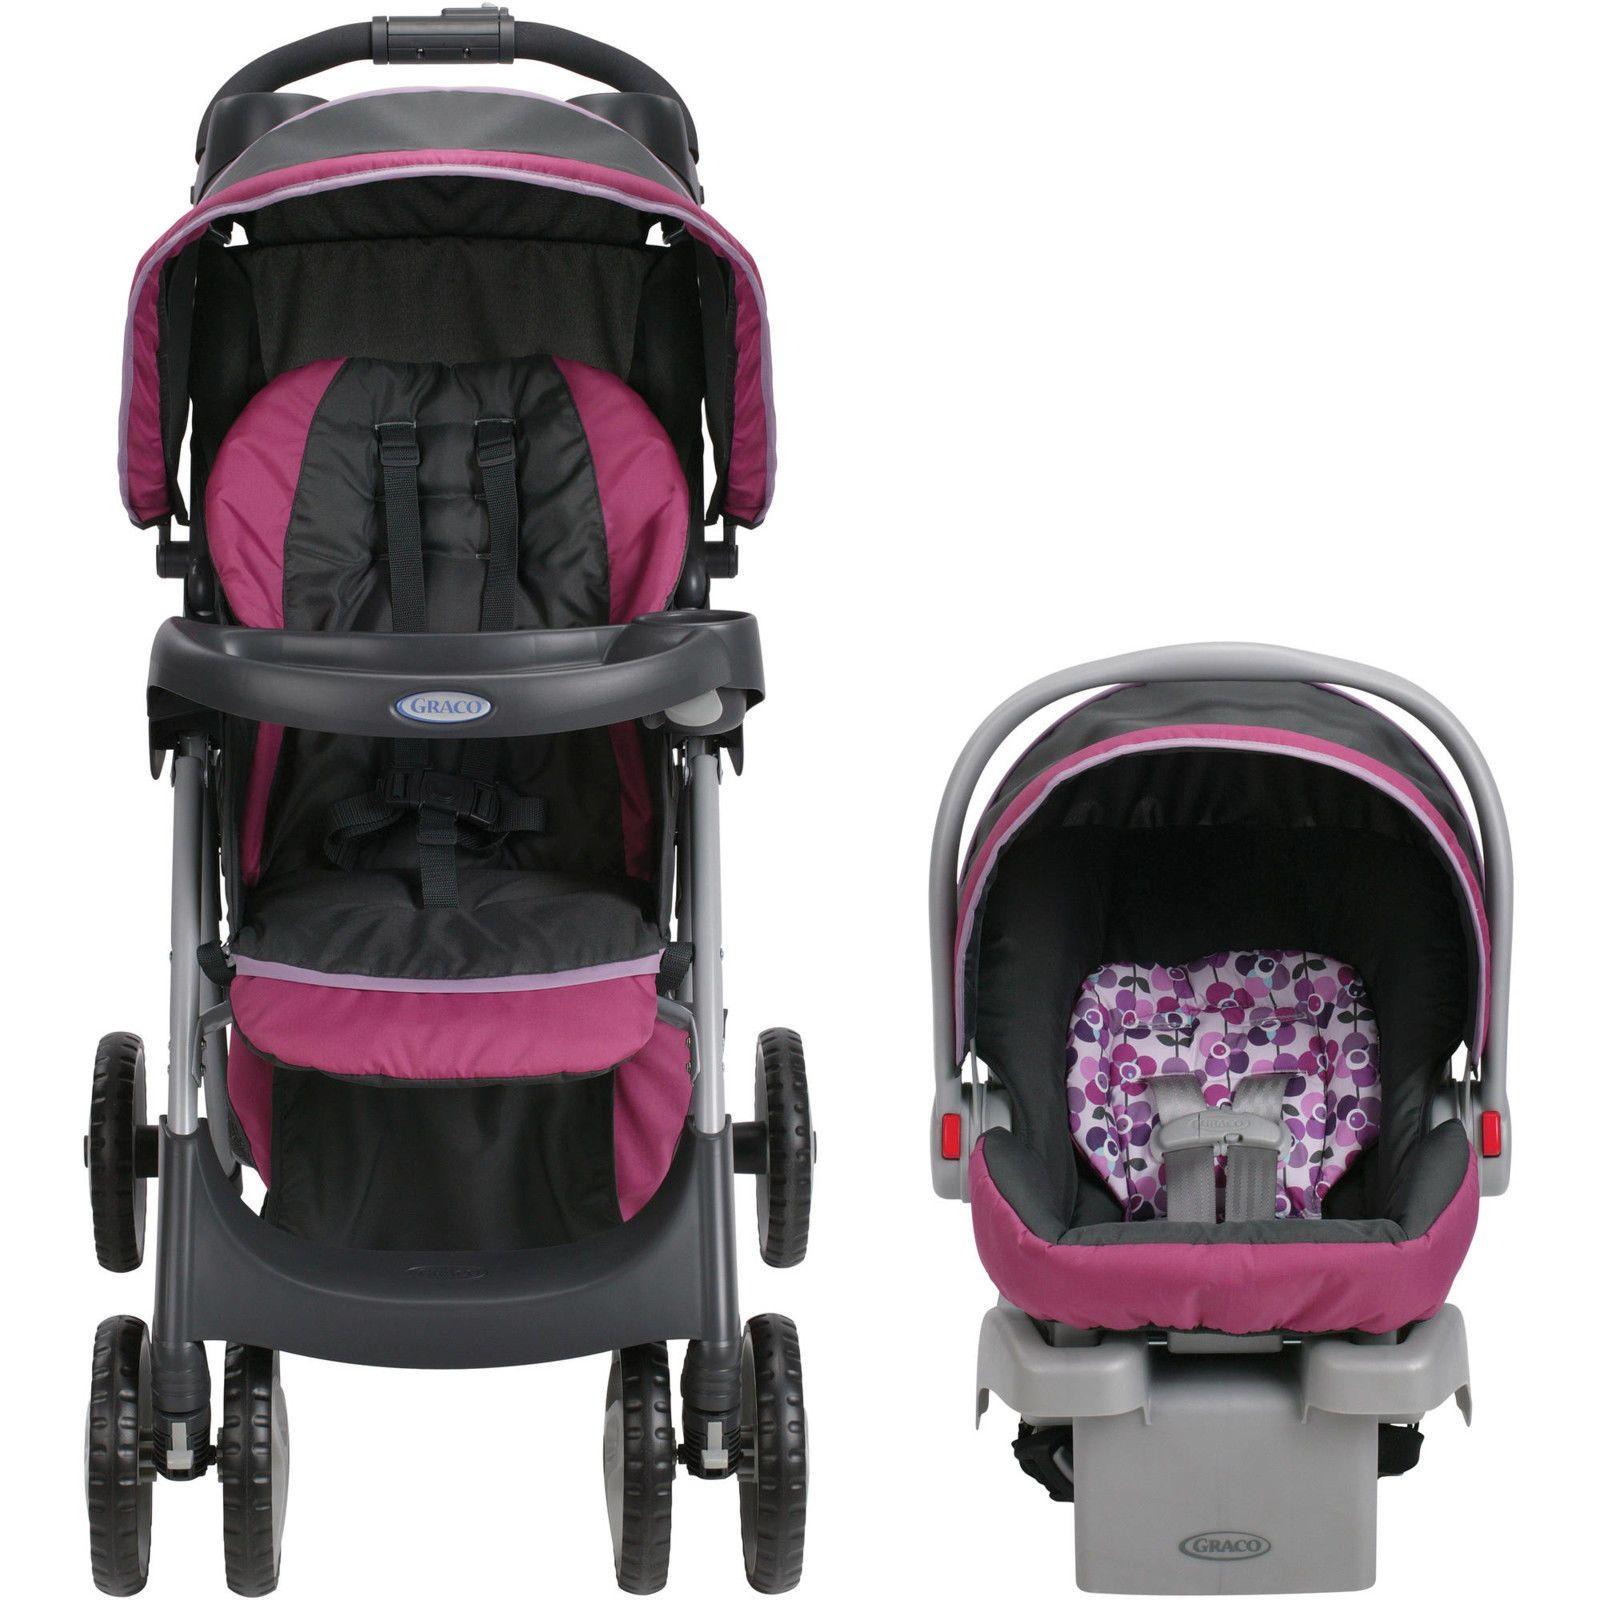 Toddler Baby Travel System Infant Car Seat Lightweight